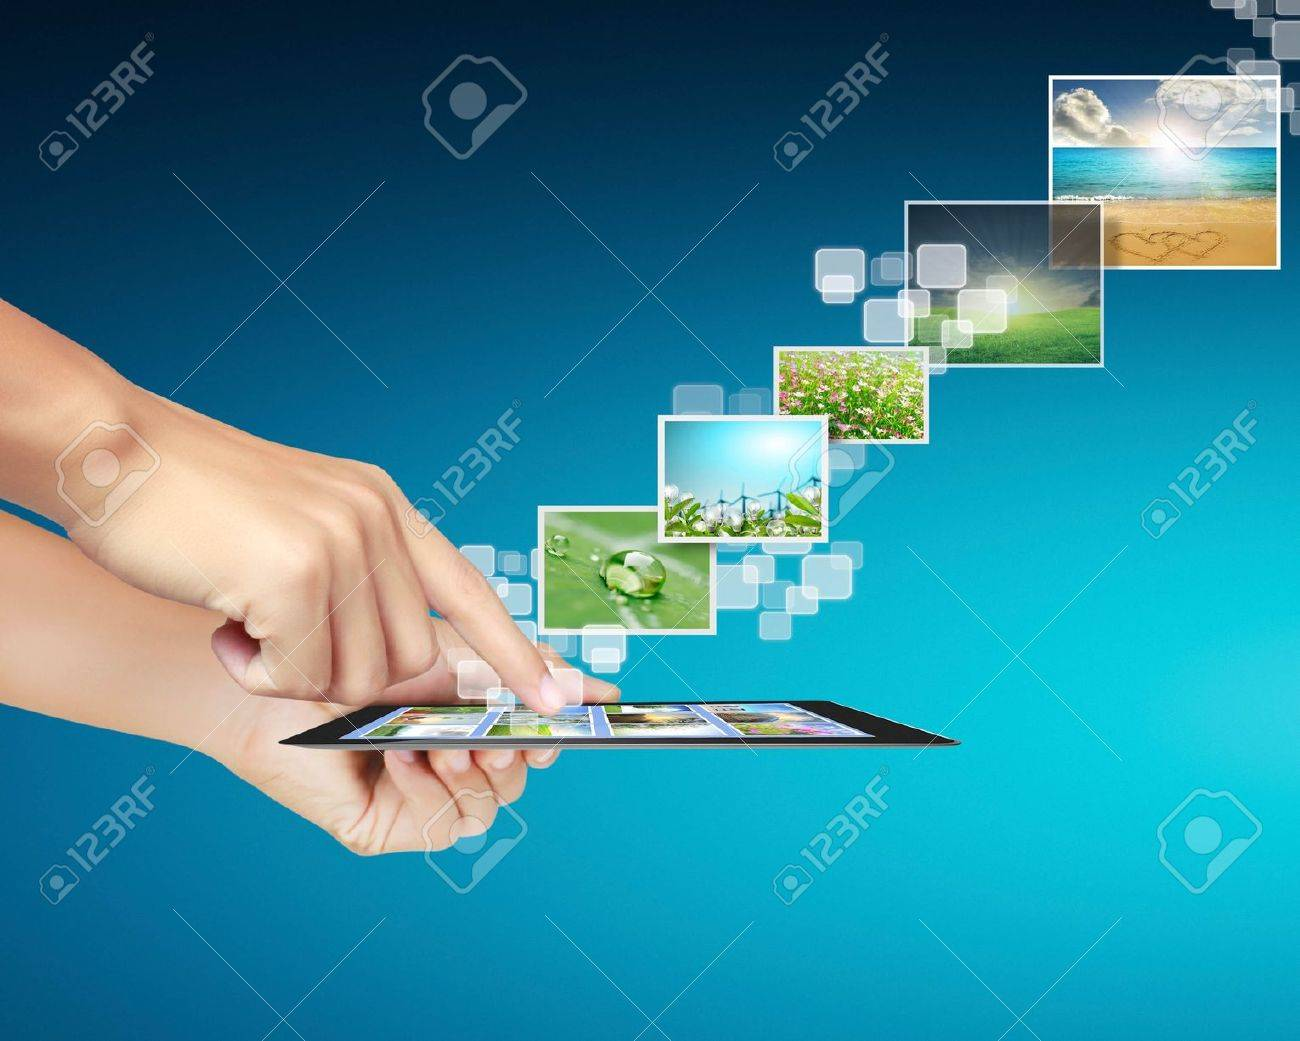 touch tablet concept images streaming from in hand Stock Photo - 14344893